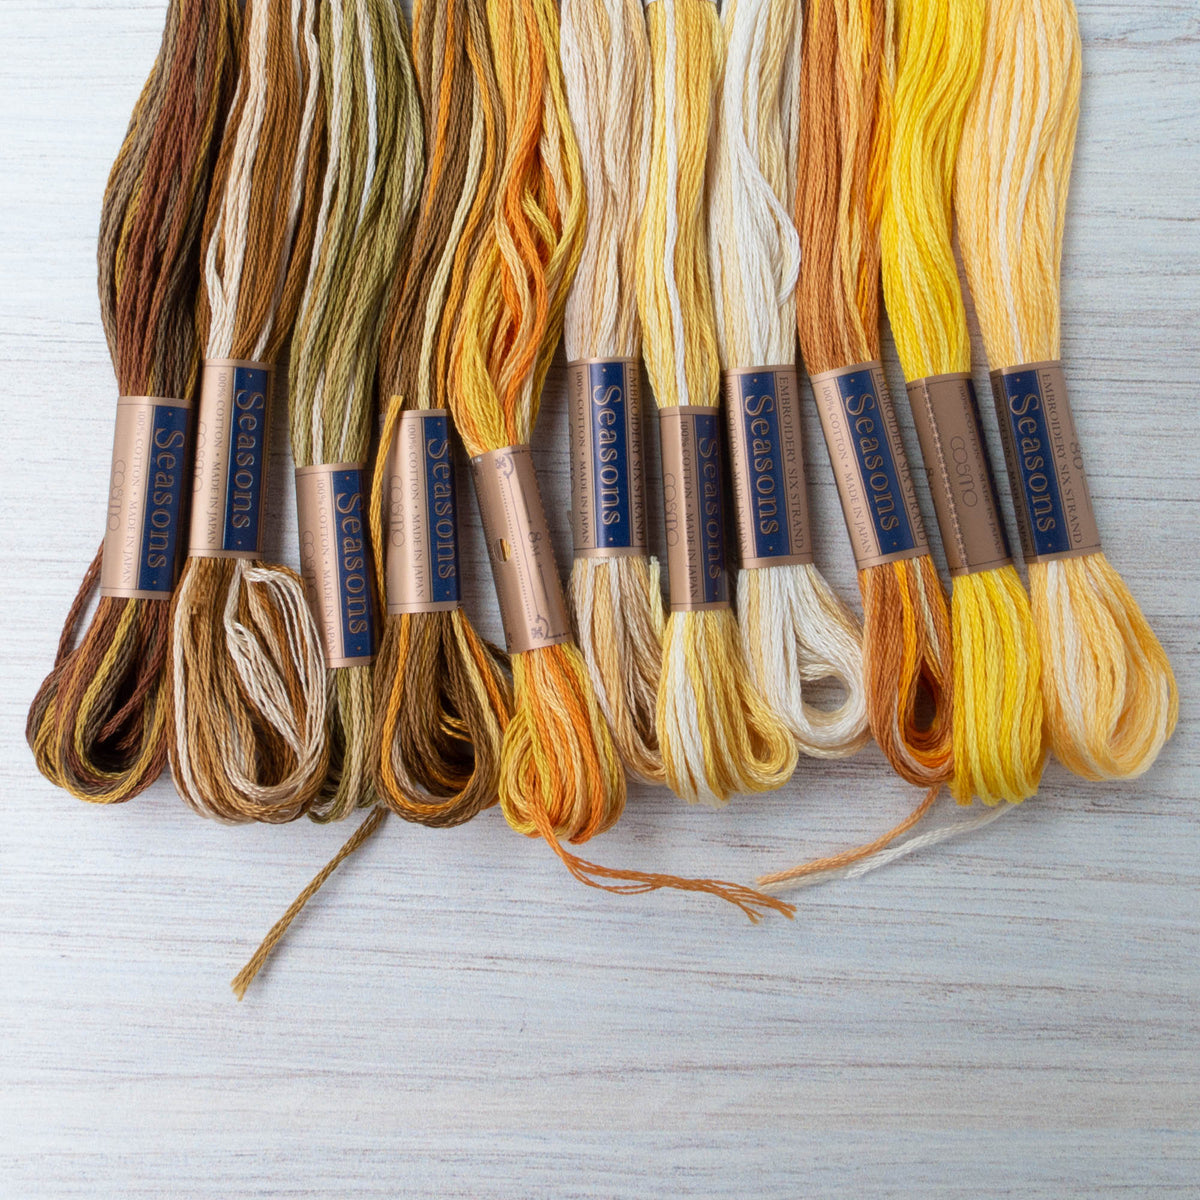 Cosmo Seasons Variegated Embroidery Floss (8027 - 8037)